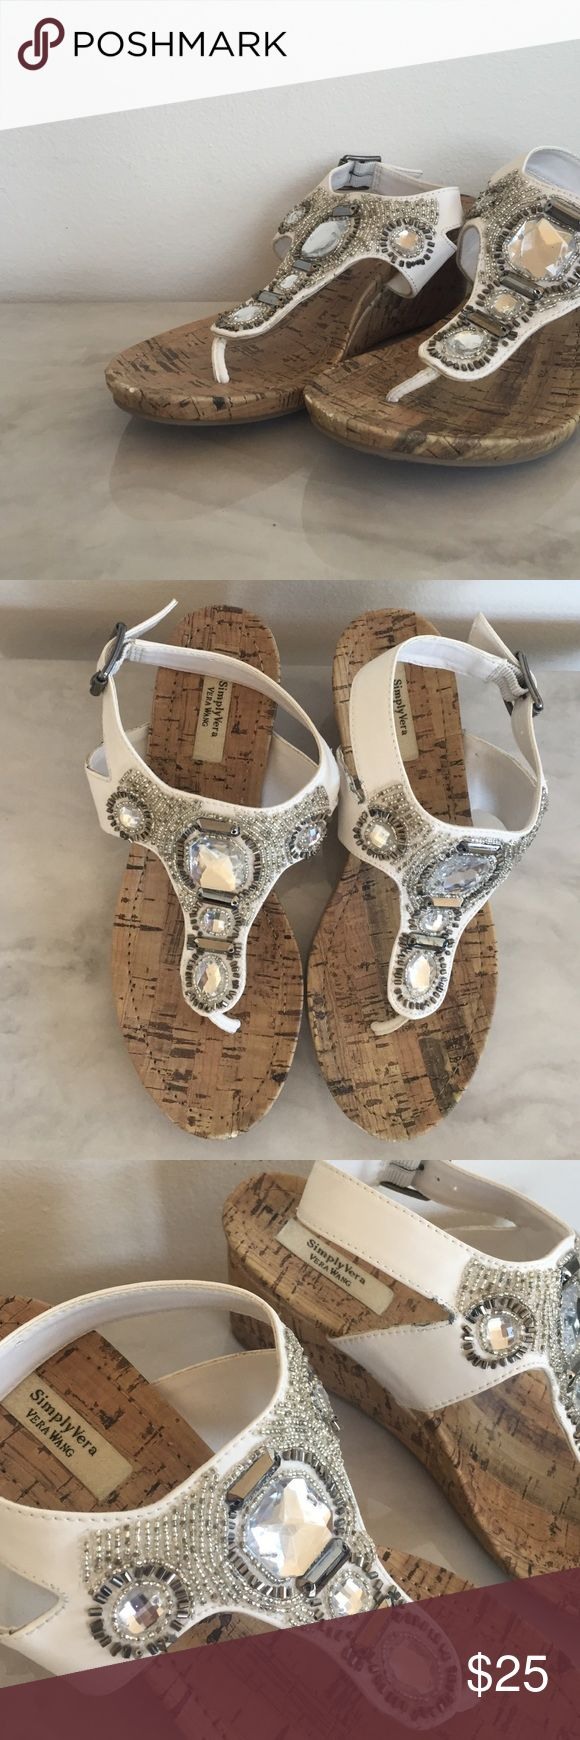 Simply Vera Wang beaded wedge sandals Simply Vera Wang beaded wedge sandals. Worn once. White size 7 Simply Vera Vera Wang Shoes Wedges